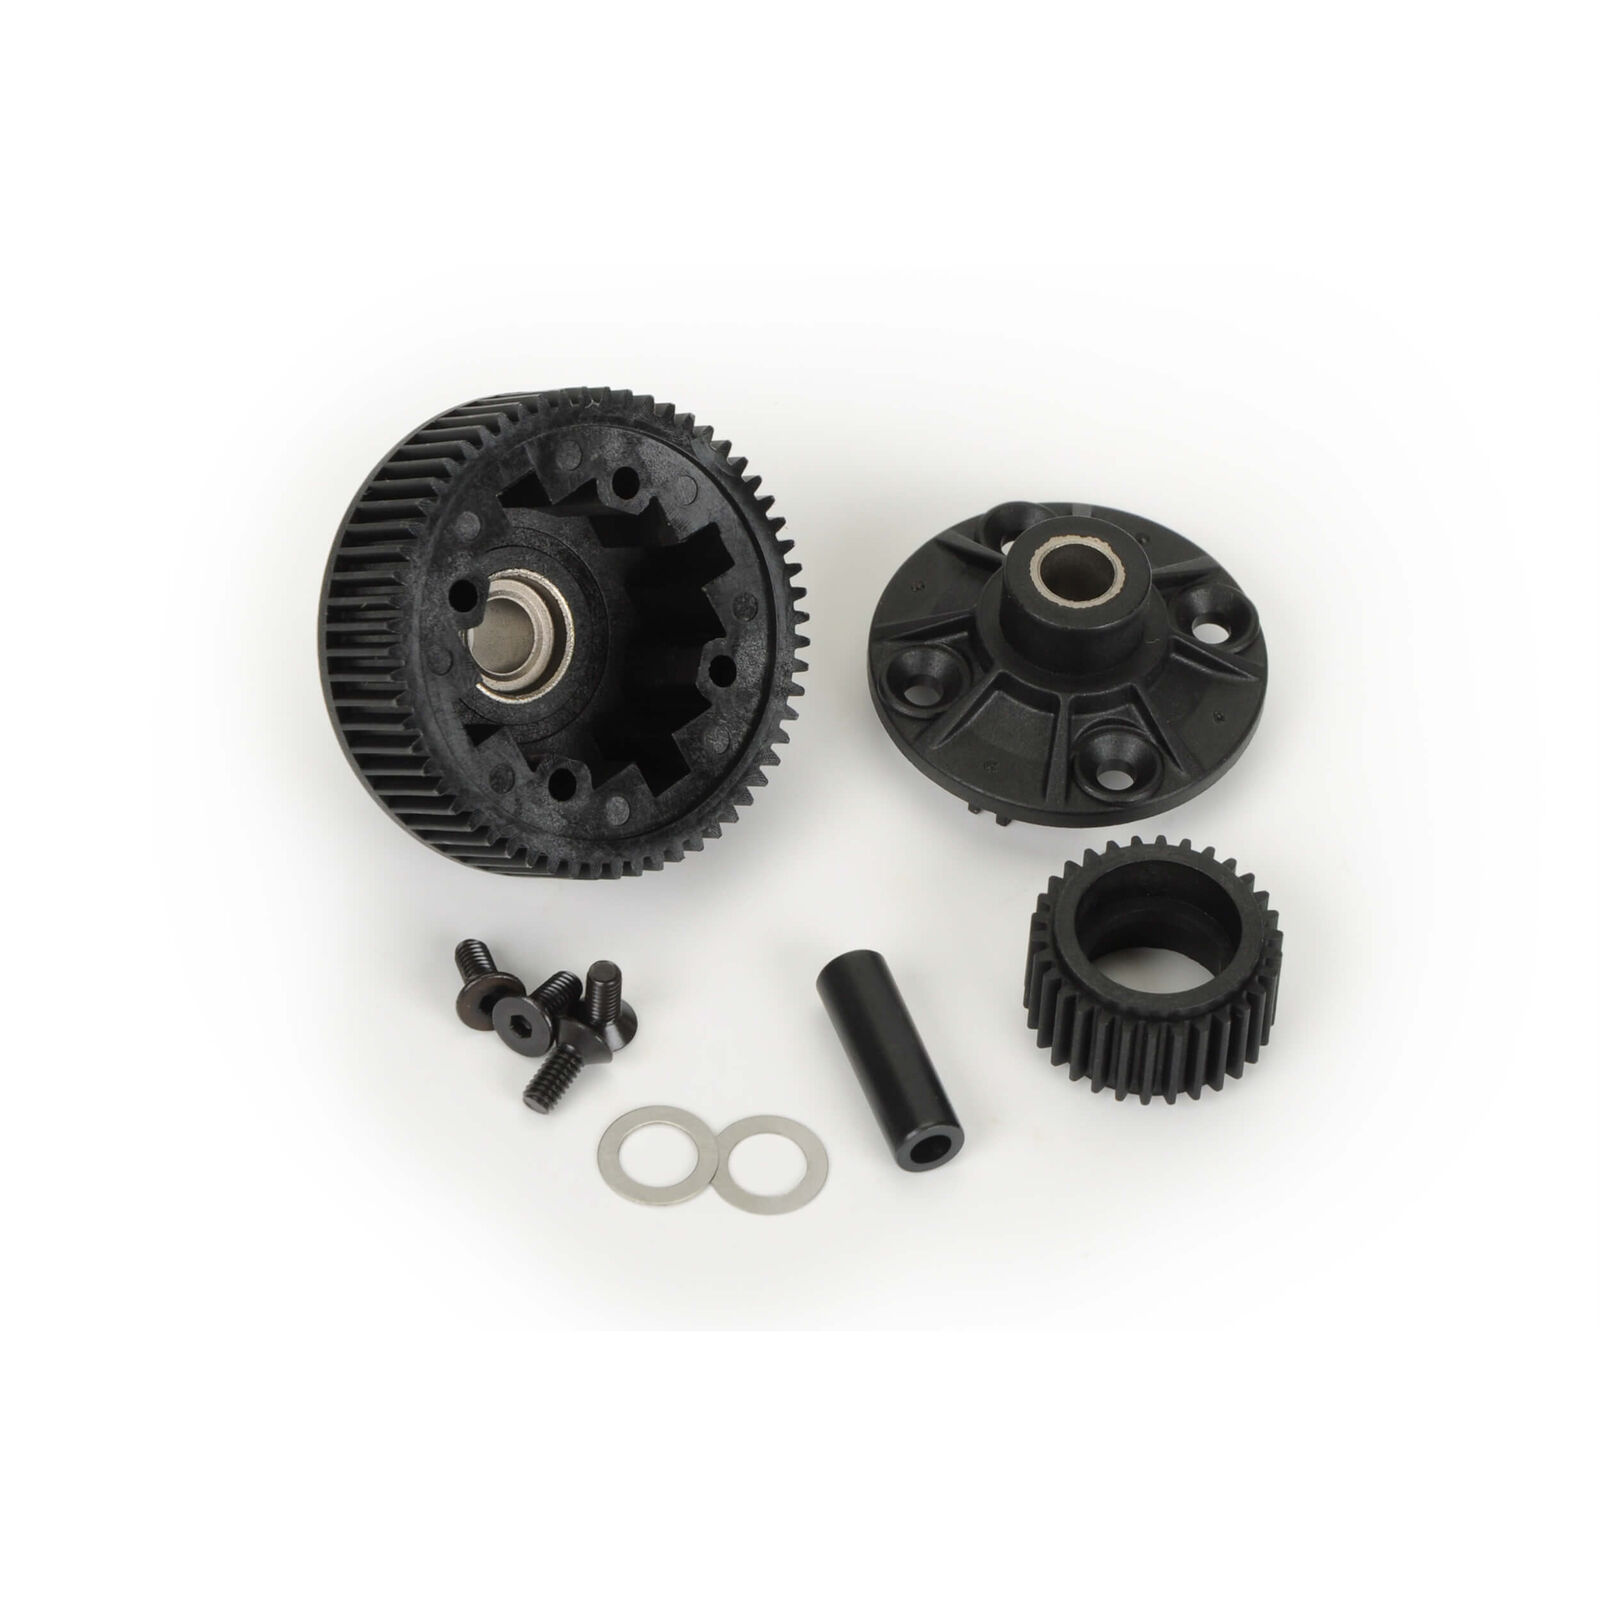 1/10 Diff and Idler Gear Set Replacement Kit: PRO Performance Transmission